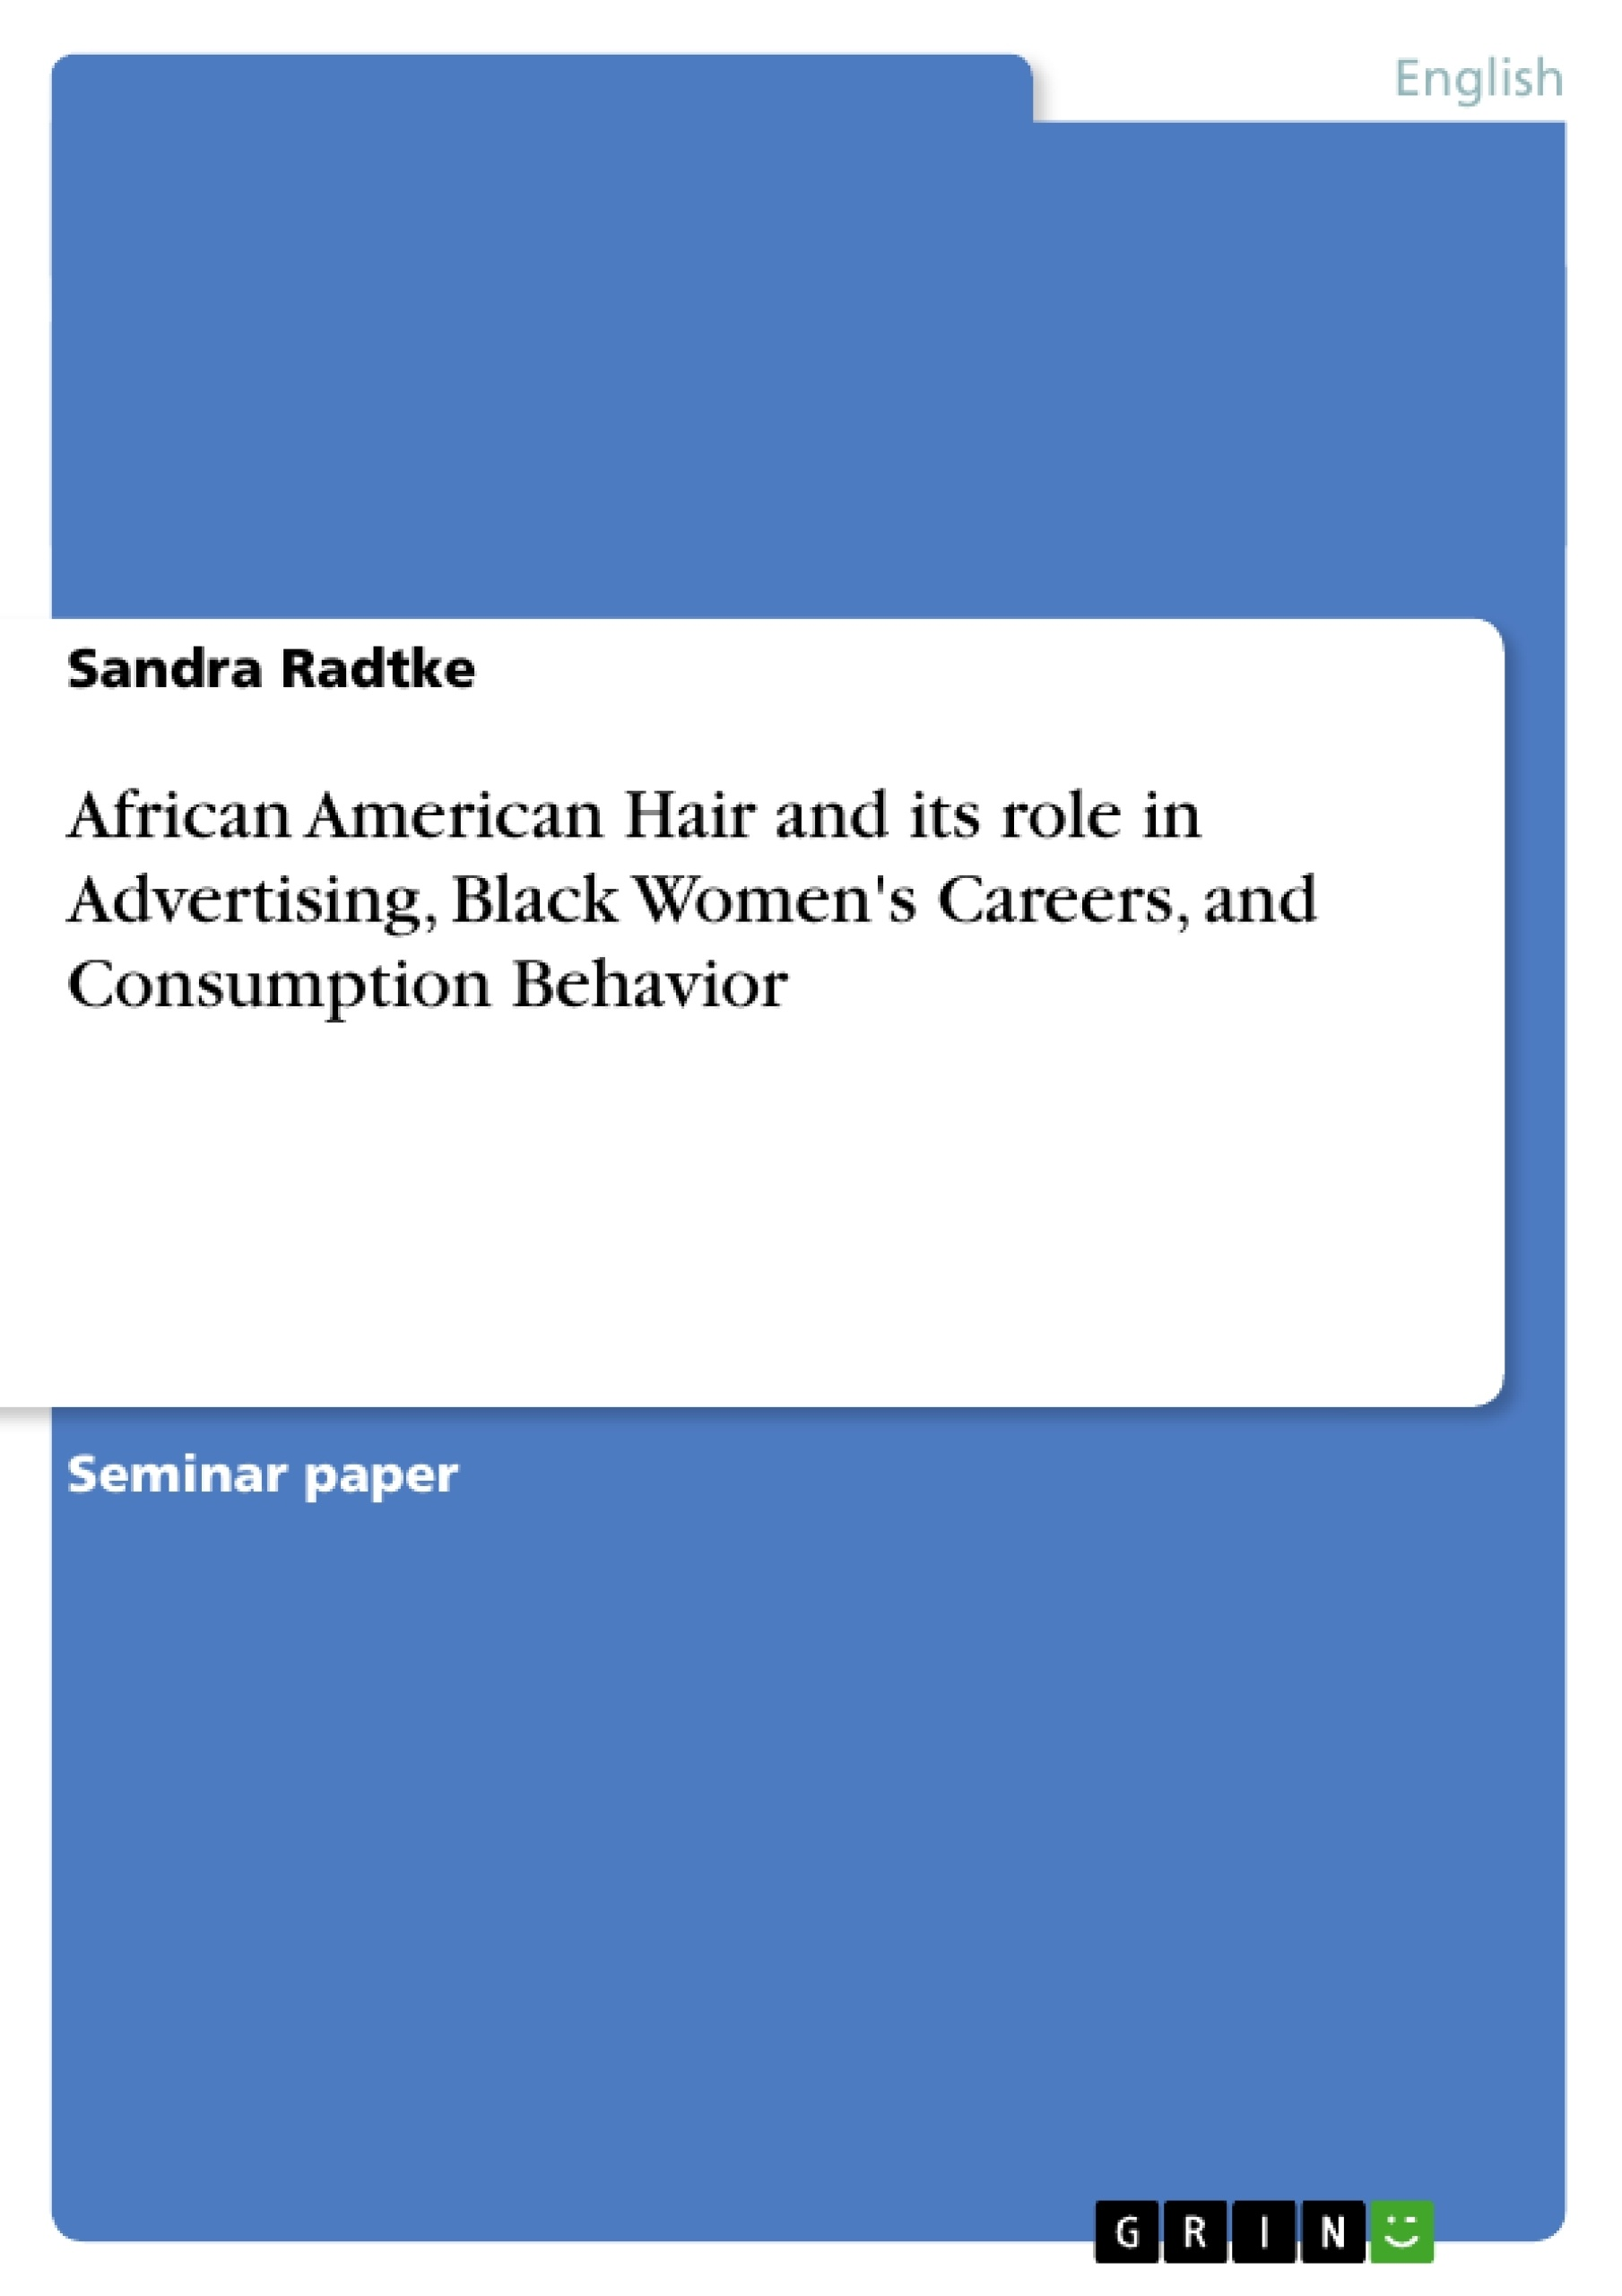 Title: African American Hair and its role in Advertising, Black Women's Careers, and Consumption Behavior